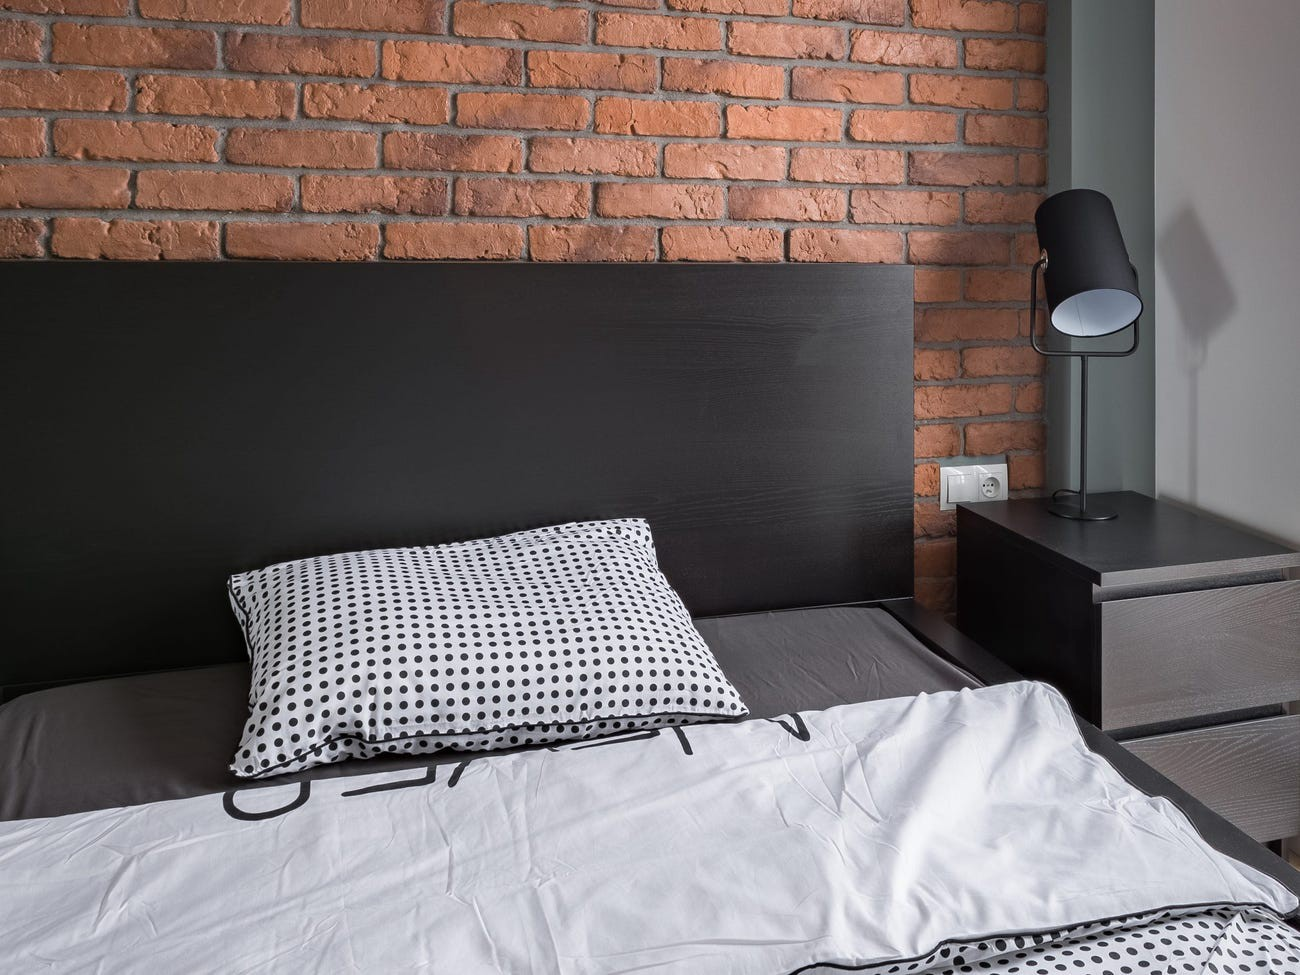 A bed in front of a brick wall.